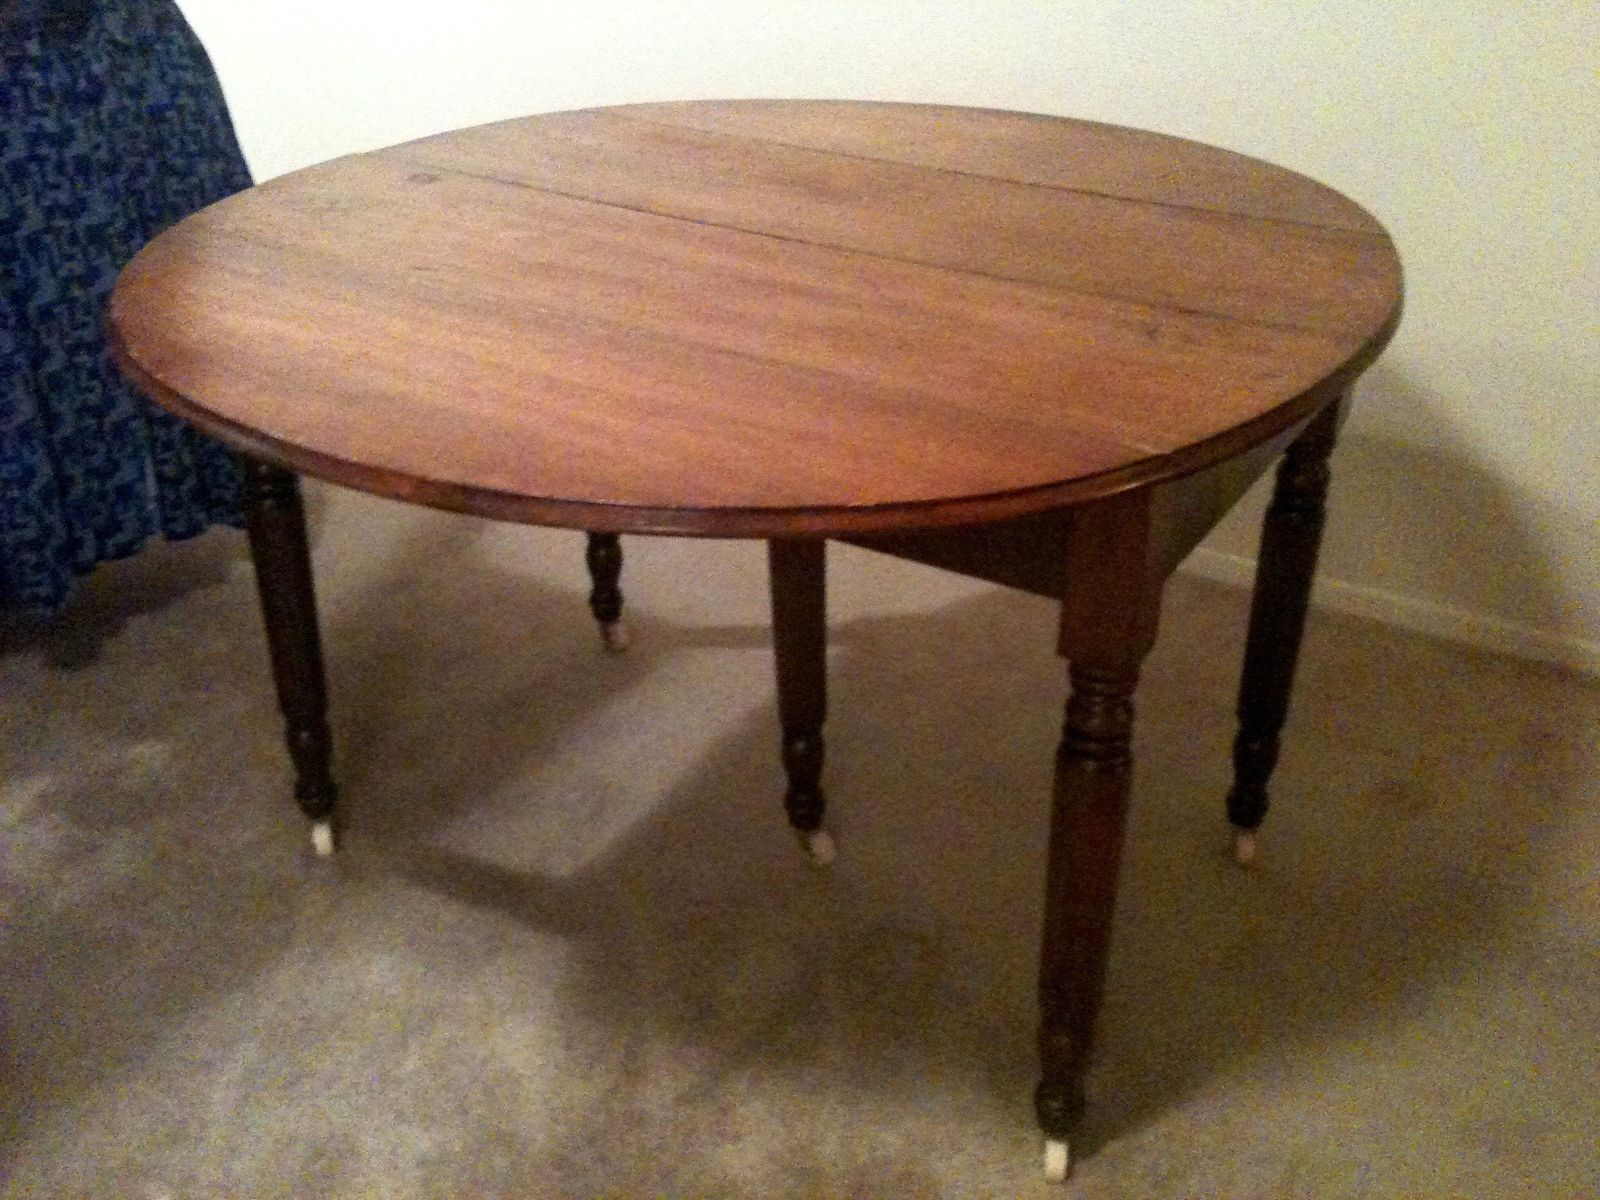 Black Oval Dining Table With Leaf